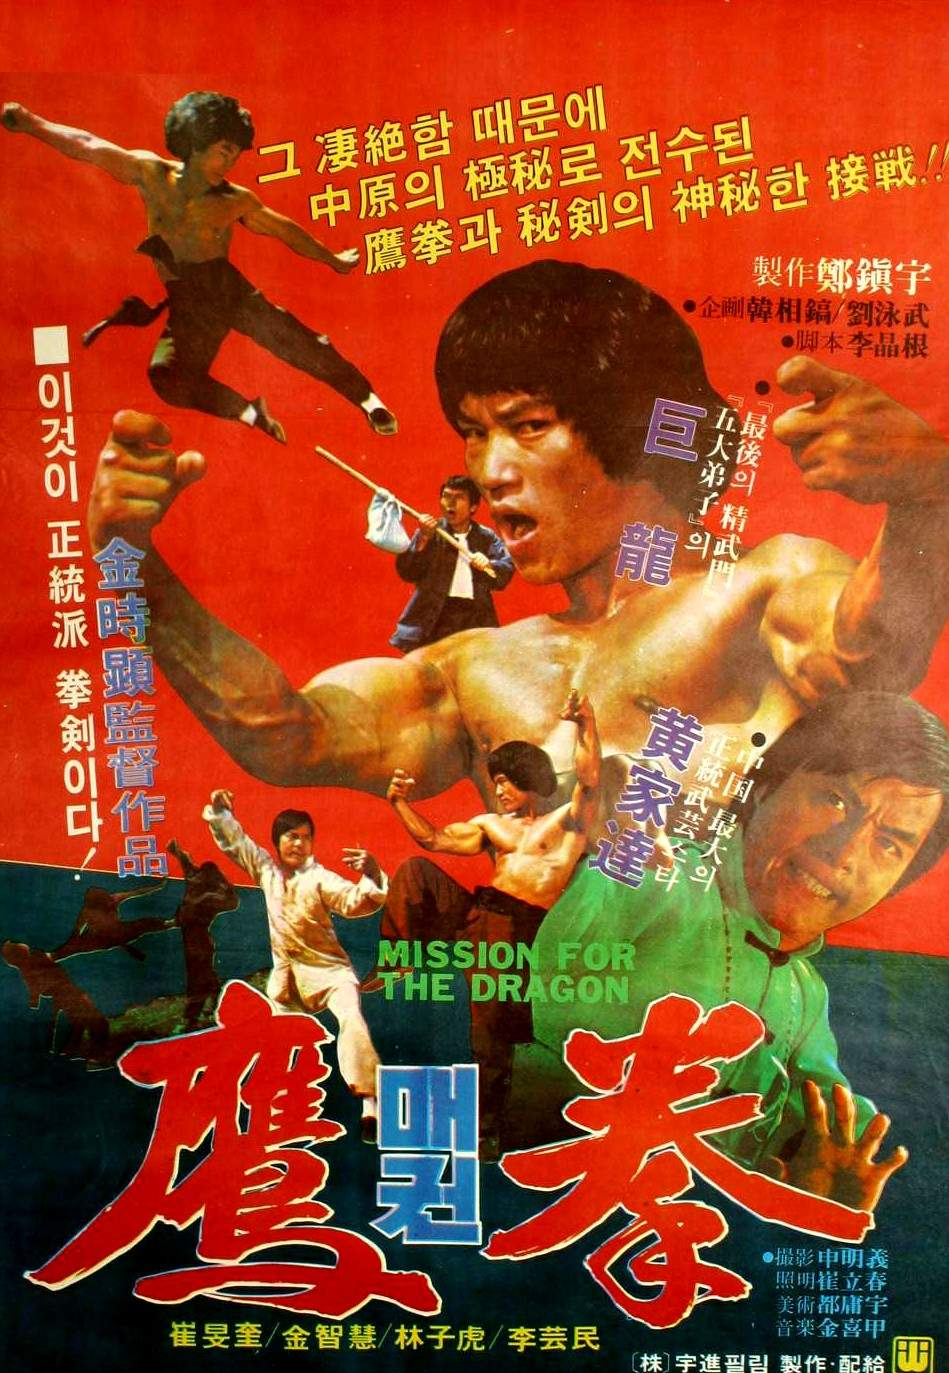 Mission For The Dragon Chinese Film Poster